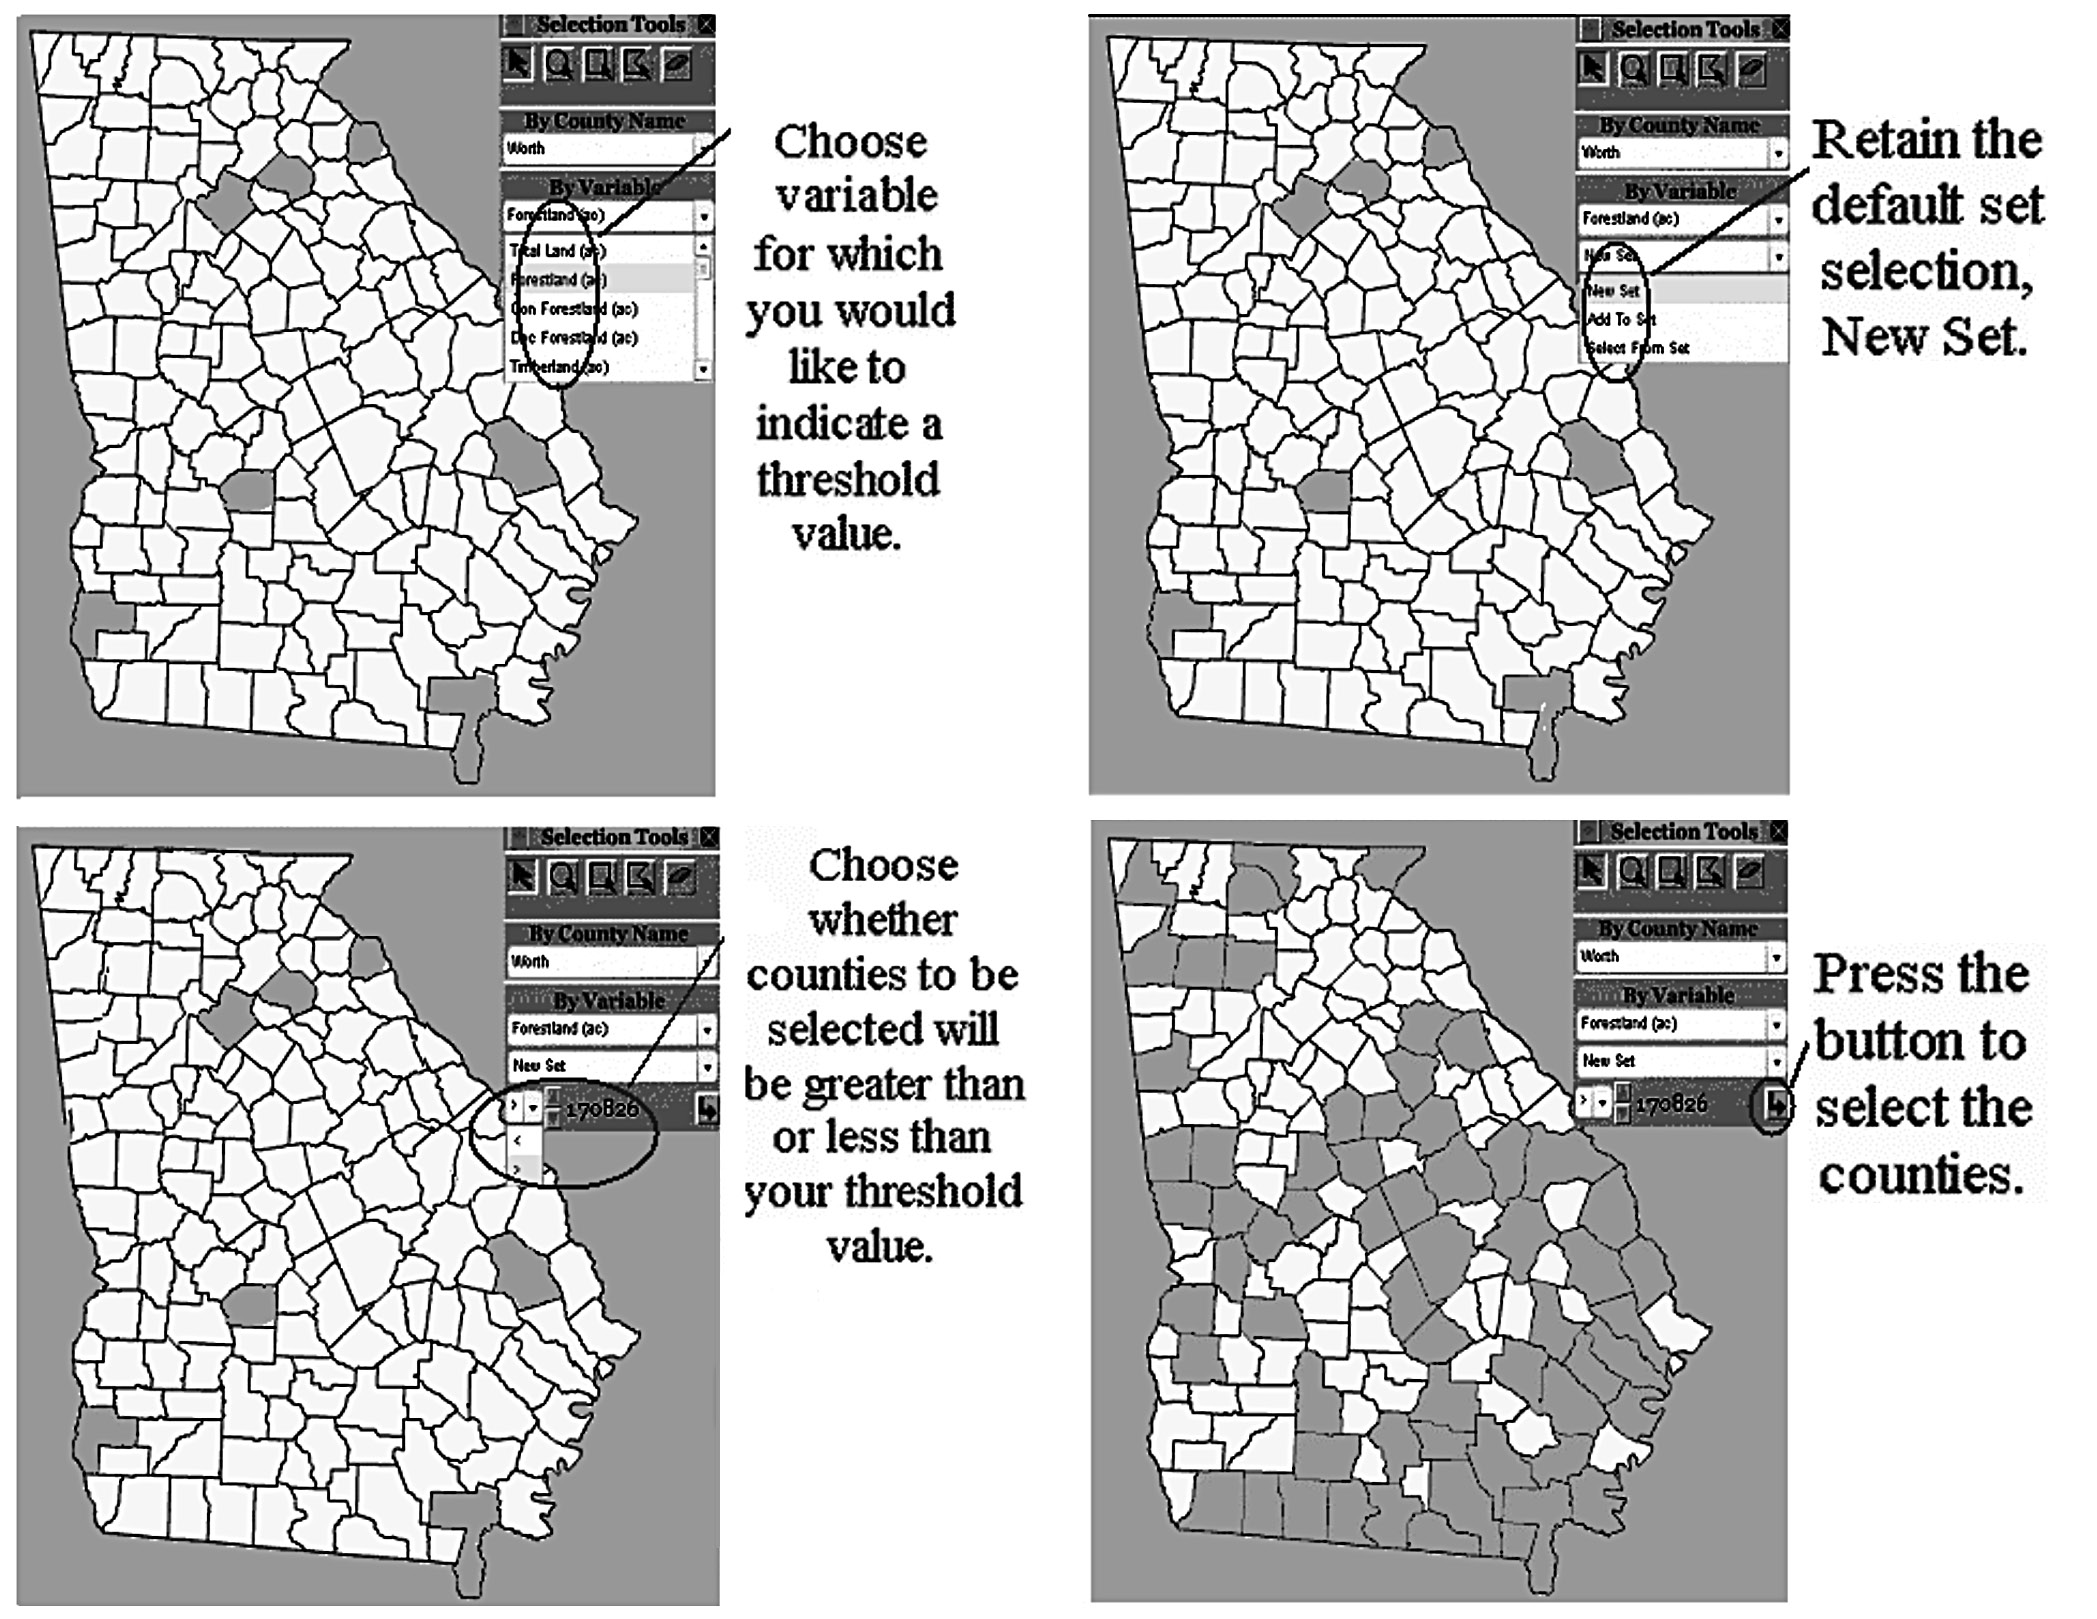 Selecting by Variable Use the By Variable tool to select counties for which the value of a designated forestry-related variable for each county is greater than (>) or less than (<) a given threshold